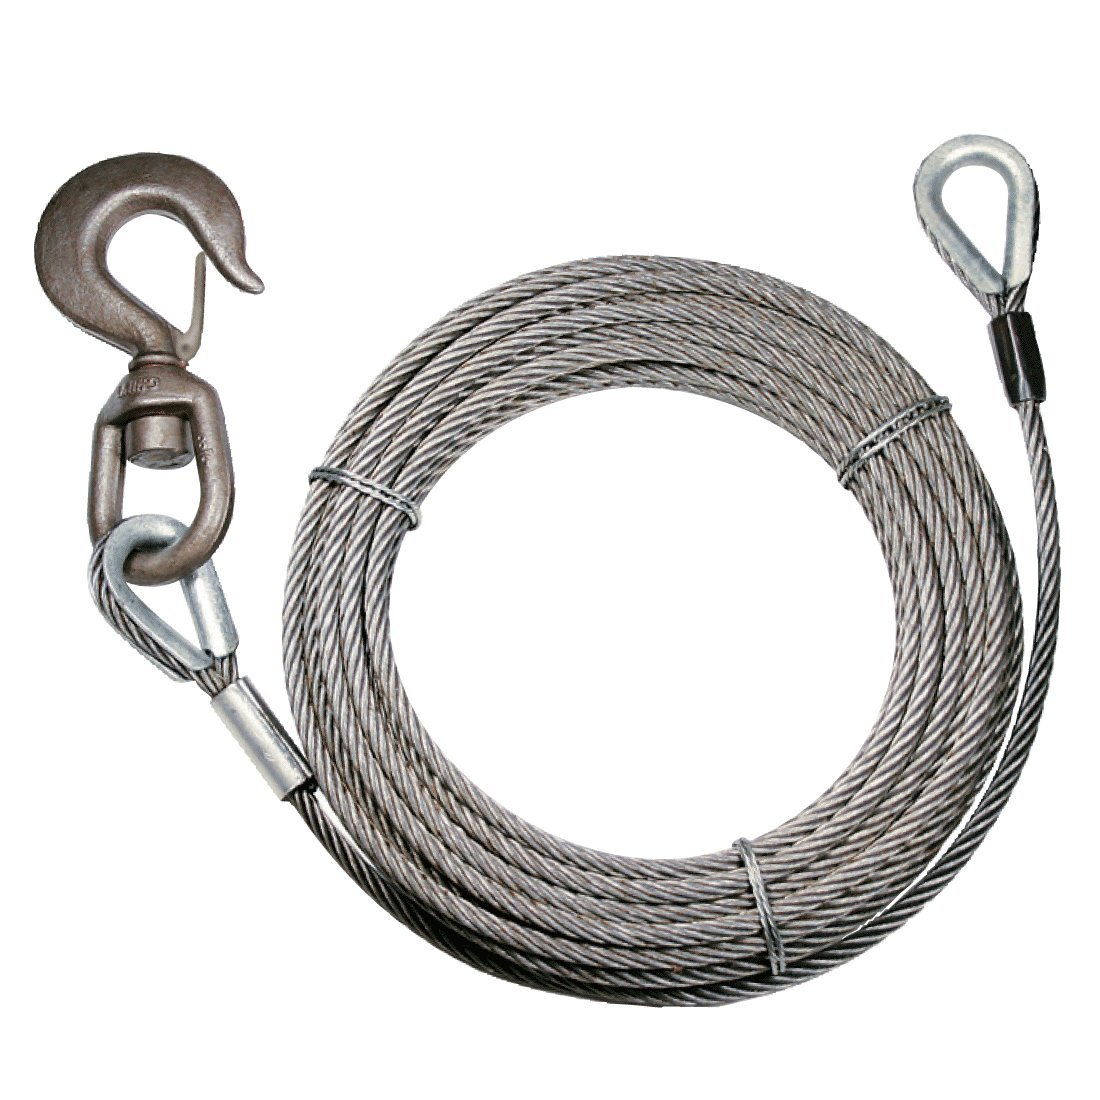 Vulcan Classic Fiber Core Extension Winch Cable With Swivel Hook And Eye - 13,950 lbs. Minimum Breaking Strength (3/8'' x 50')